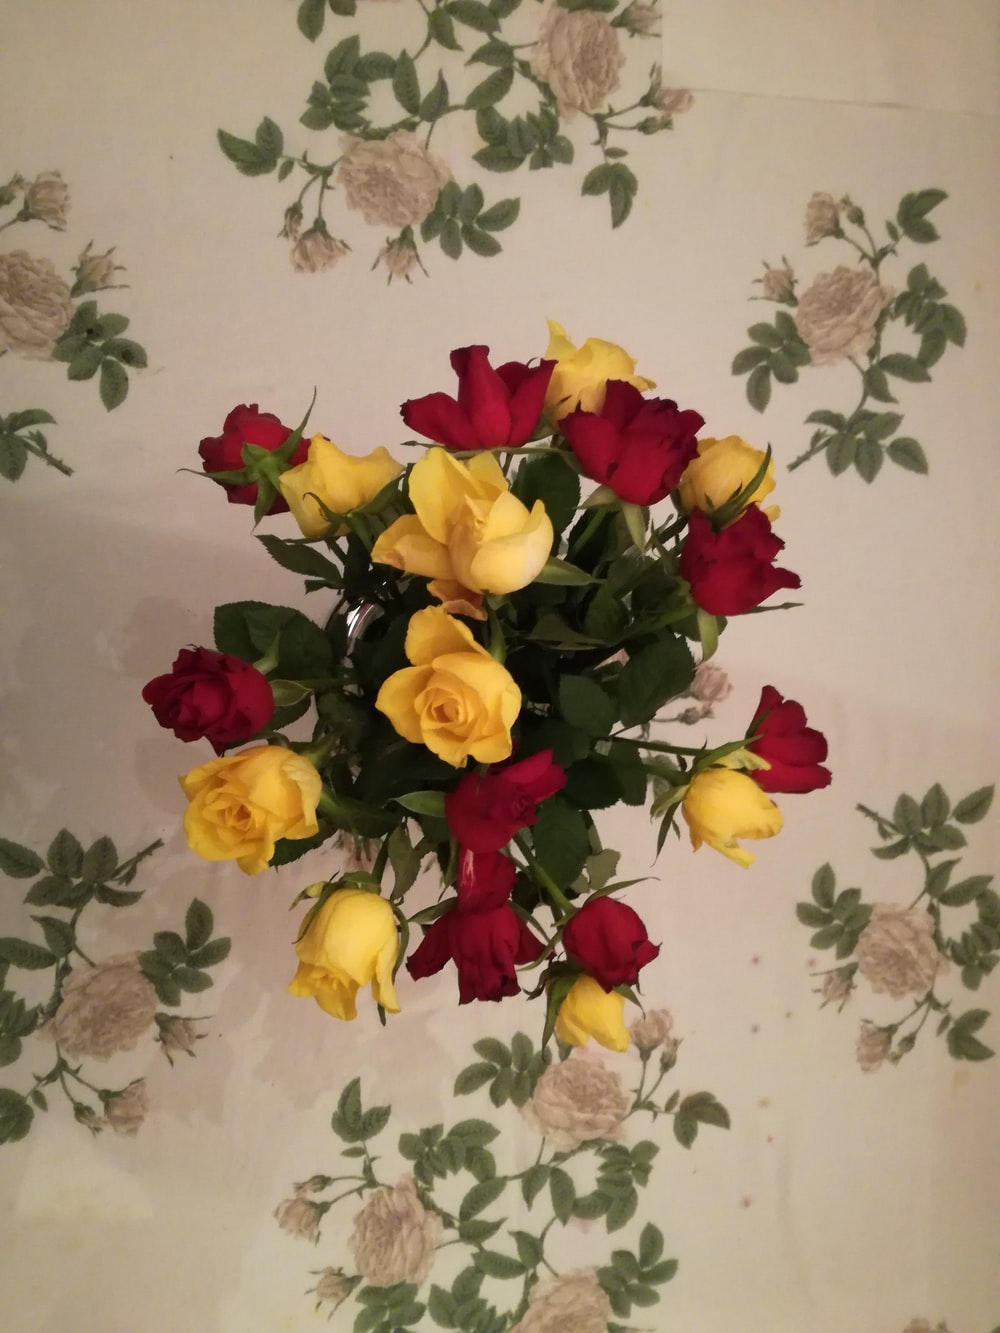 yellow and red rose flowers